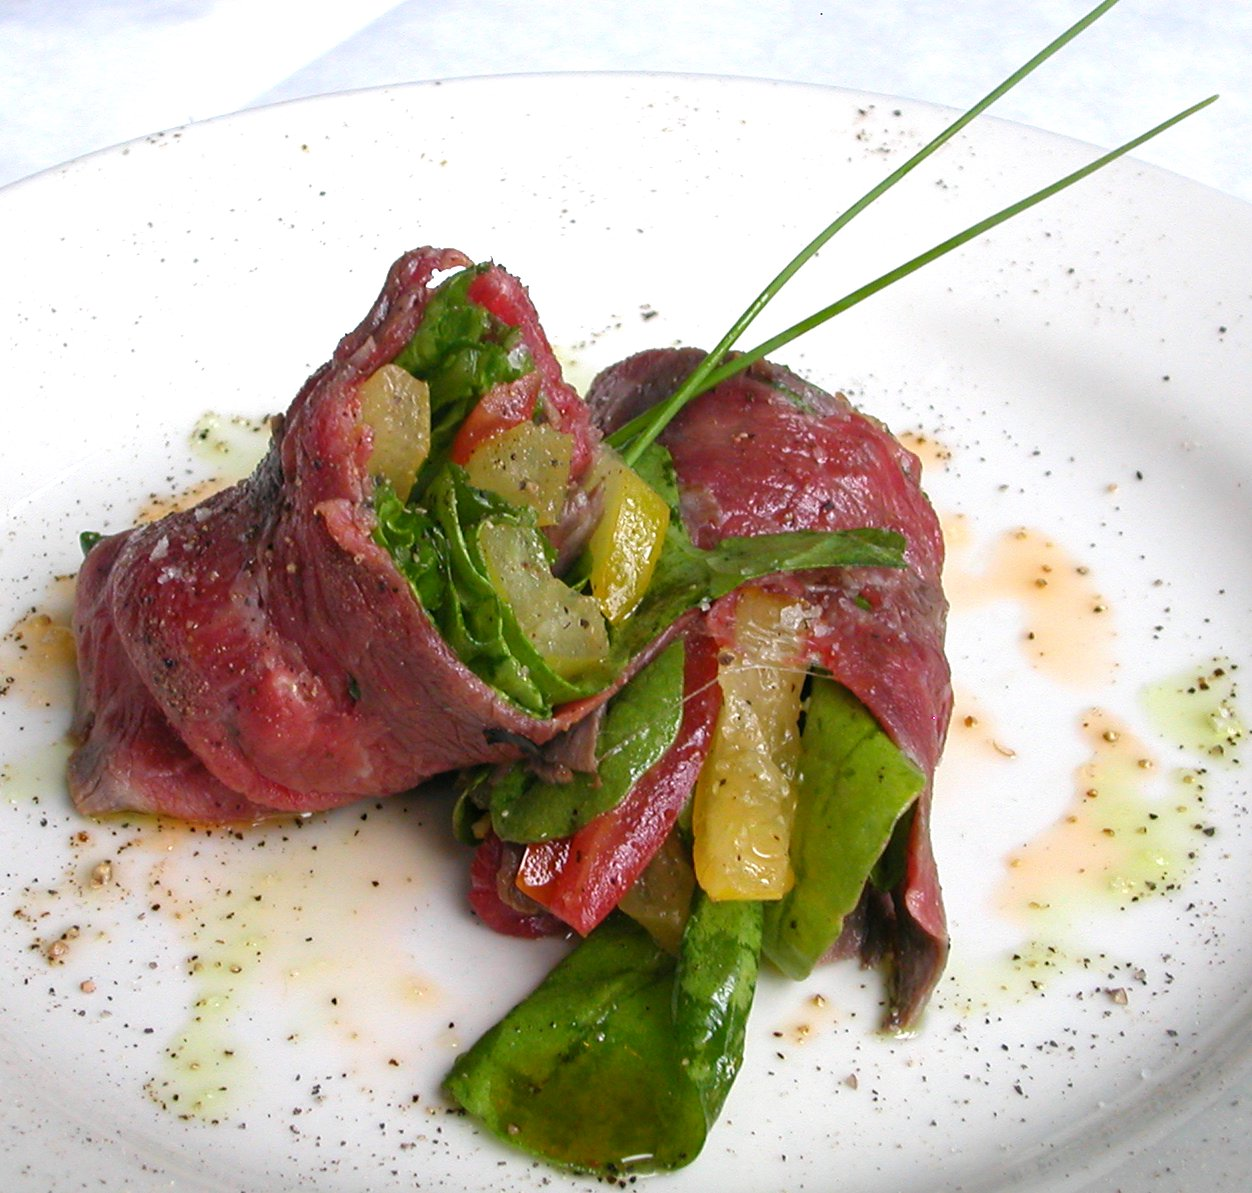 crispy help i sirloin carpaccio as italian style essentially carpaccio